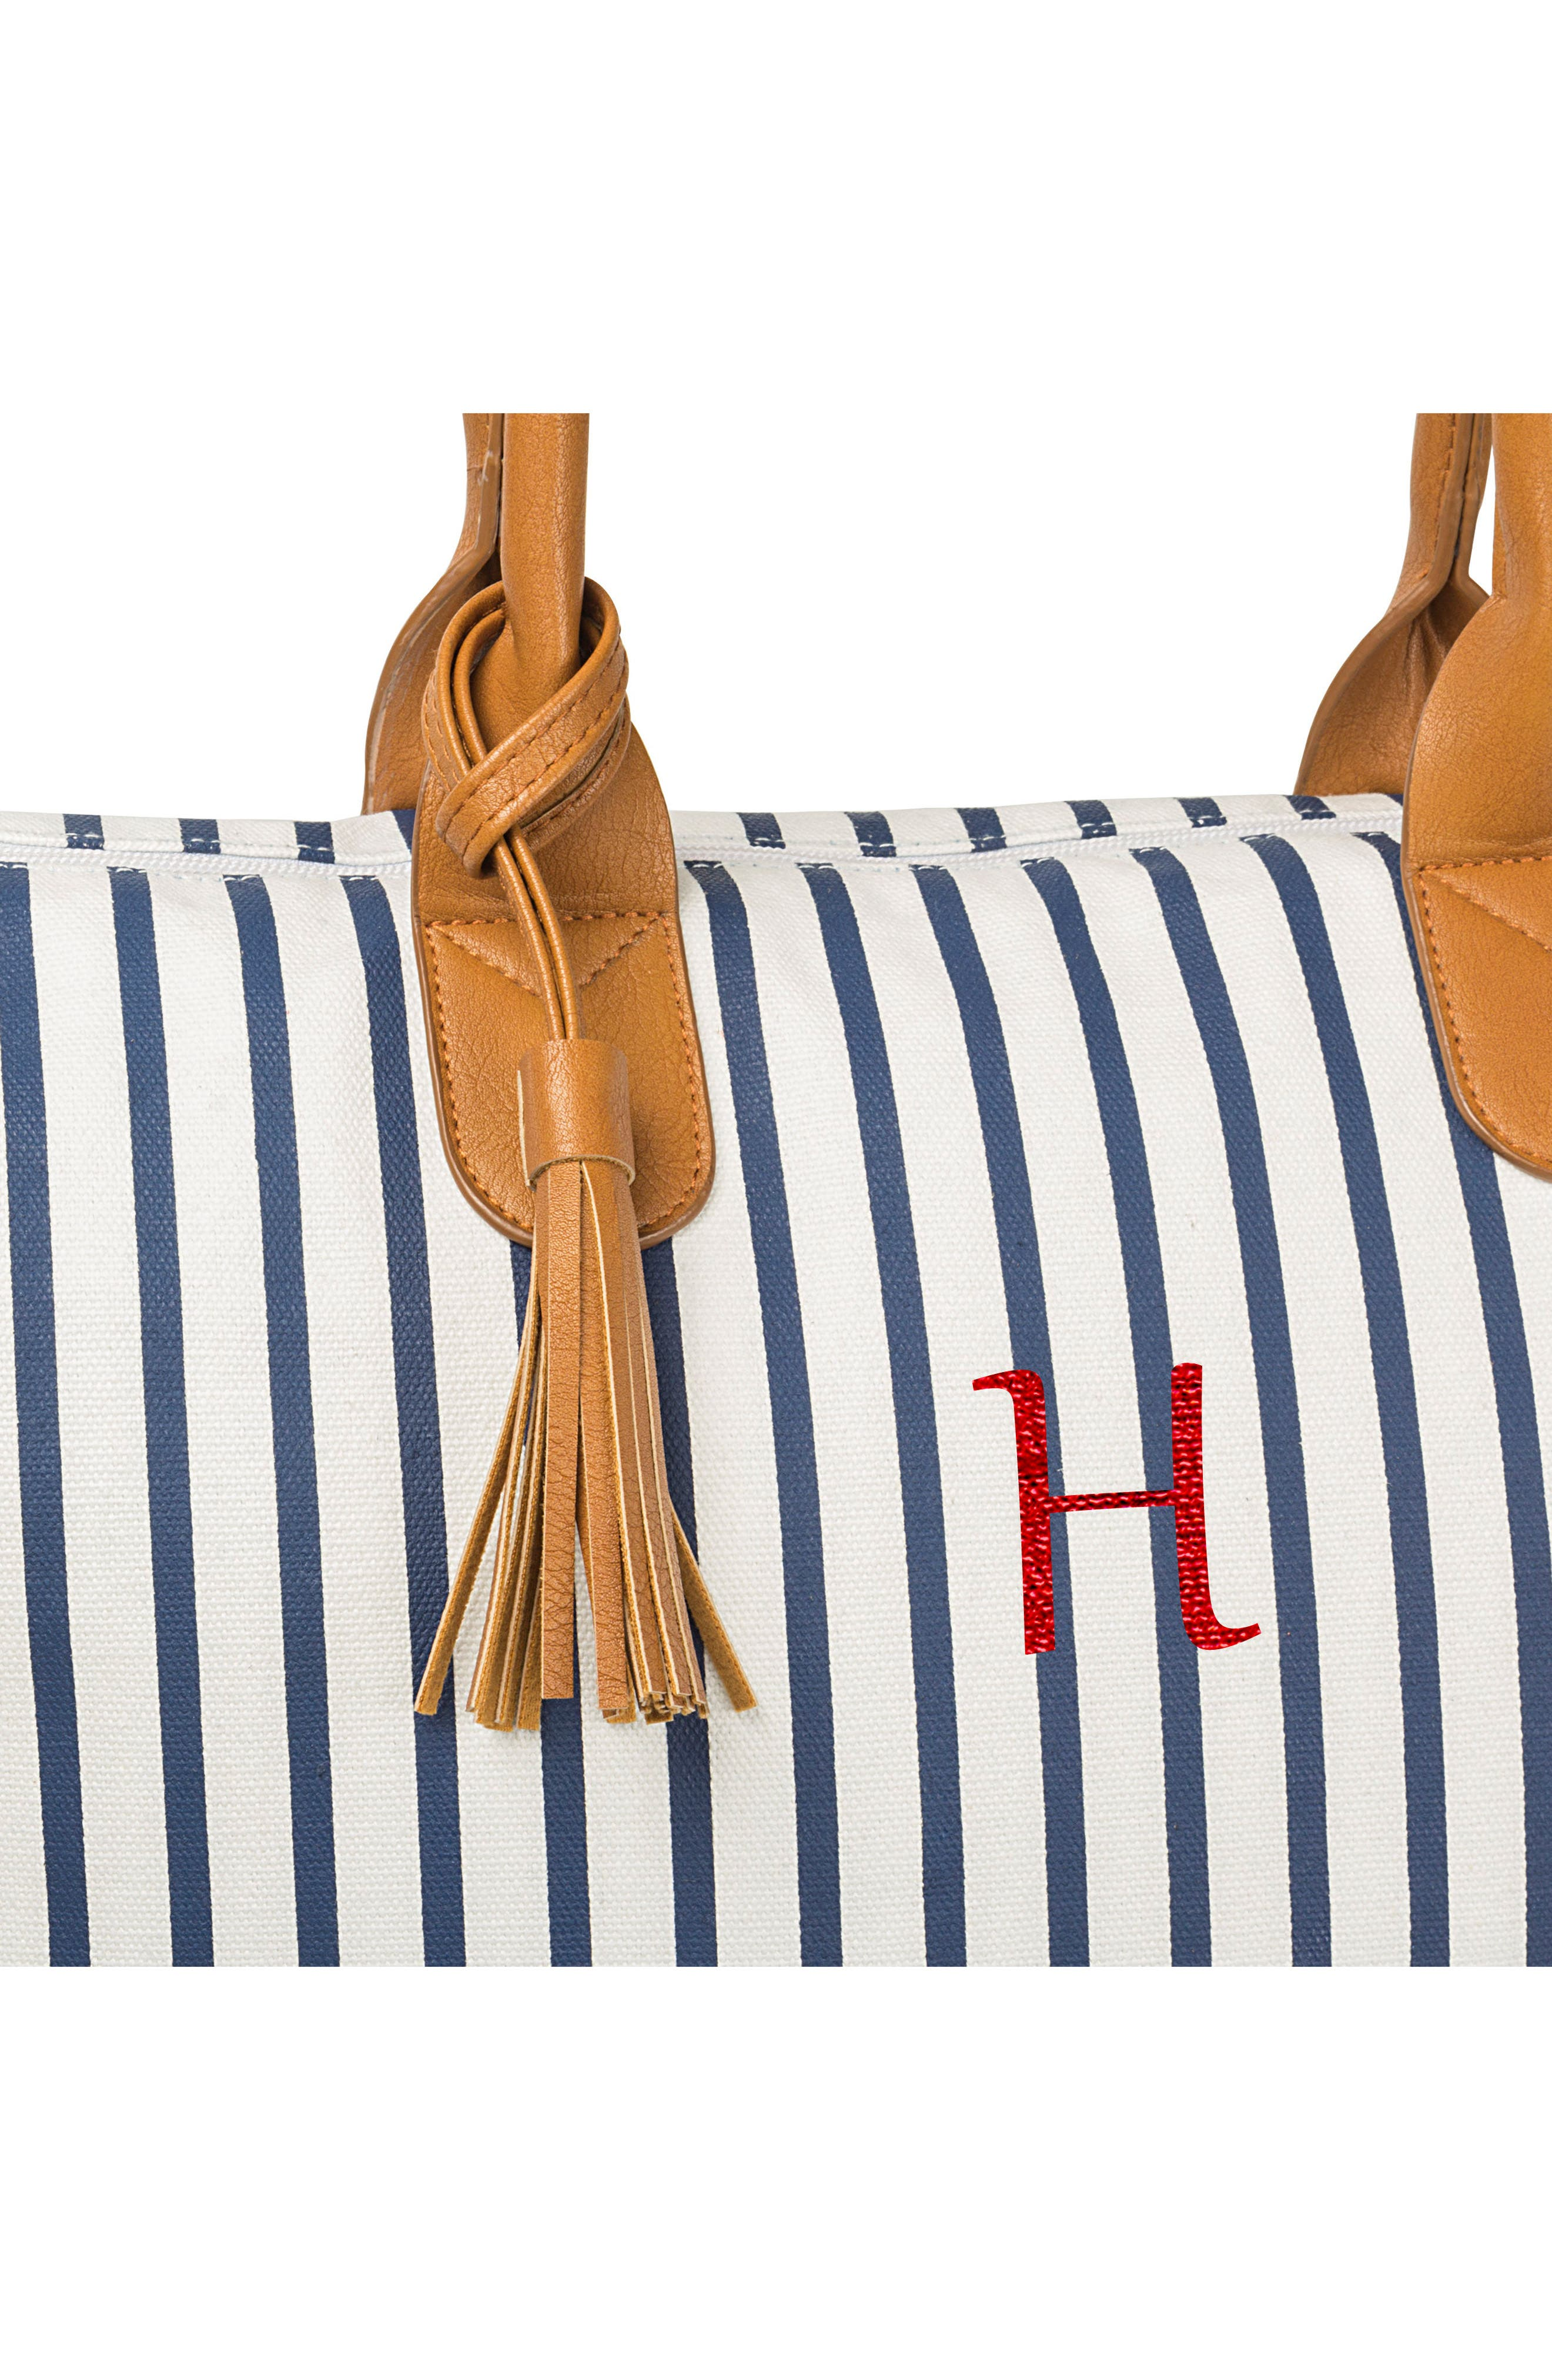 CATHY'S CONCEPTS, Monogram Oversized Tote, Alternate thumbnail 4, color, BLUE